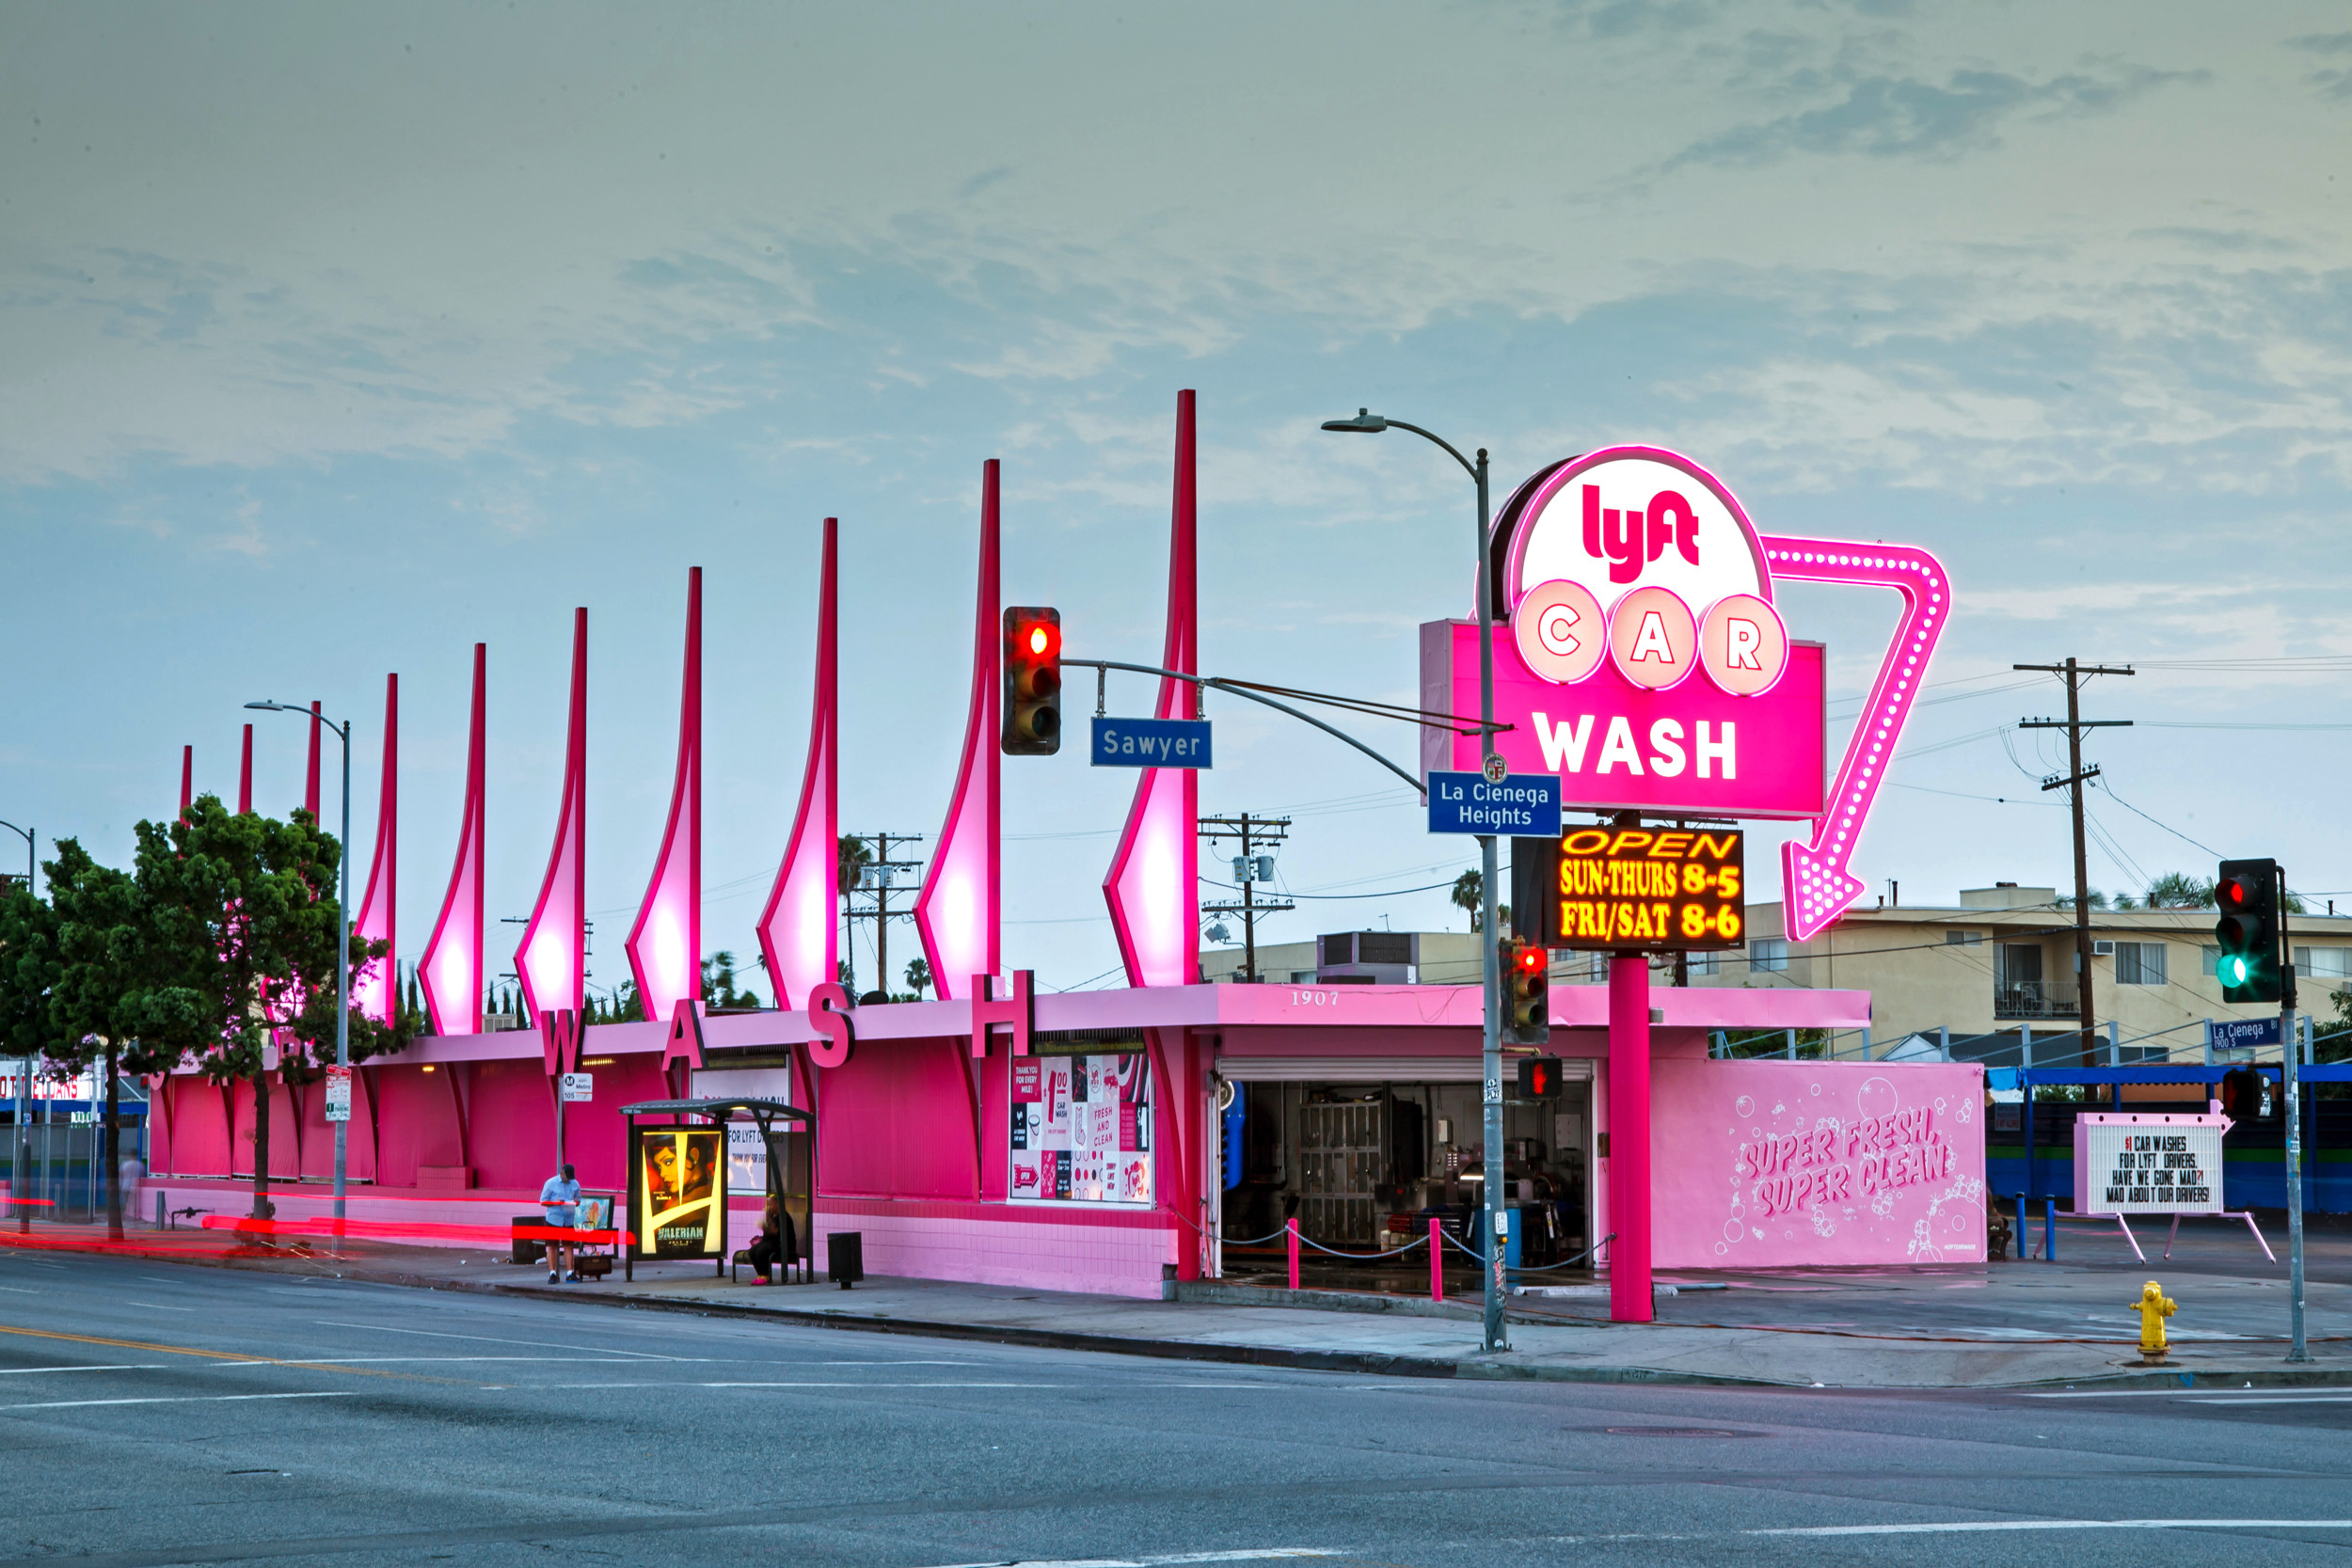 Lyft Car Wash Los Angeles